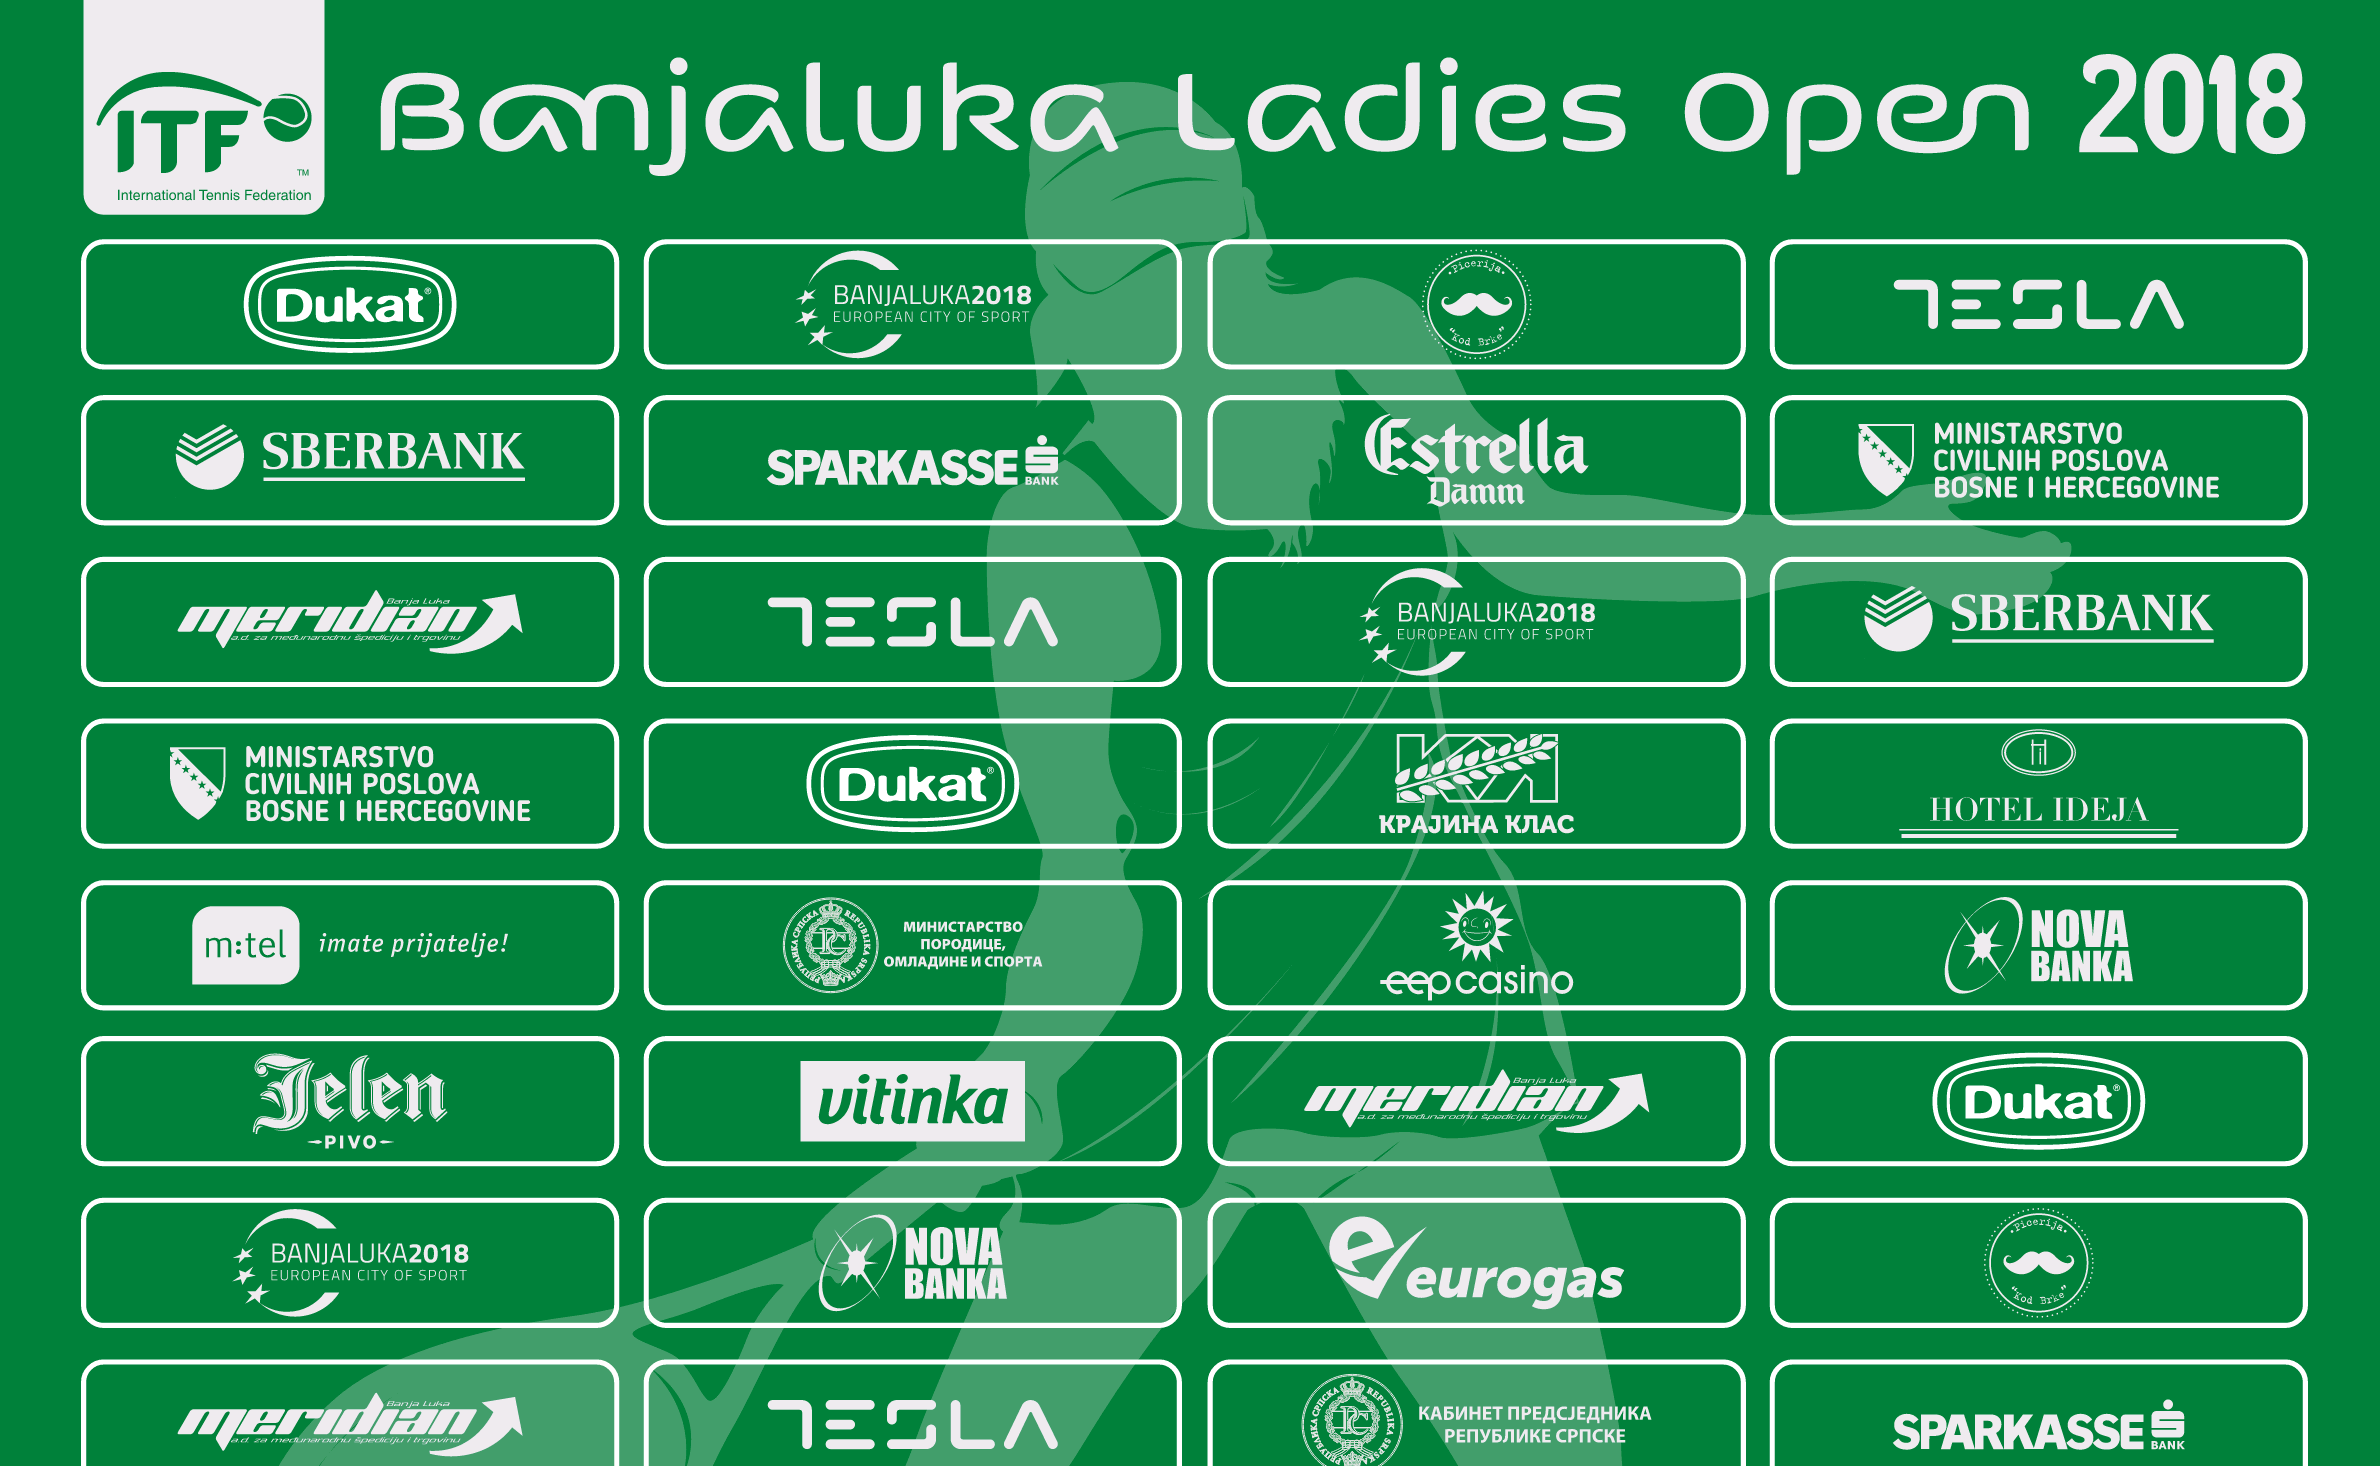 Banjaluka ladies Open 2018 - Mečevi uživo/live streaming